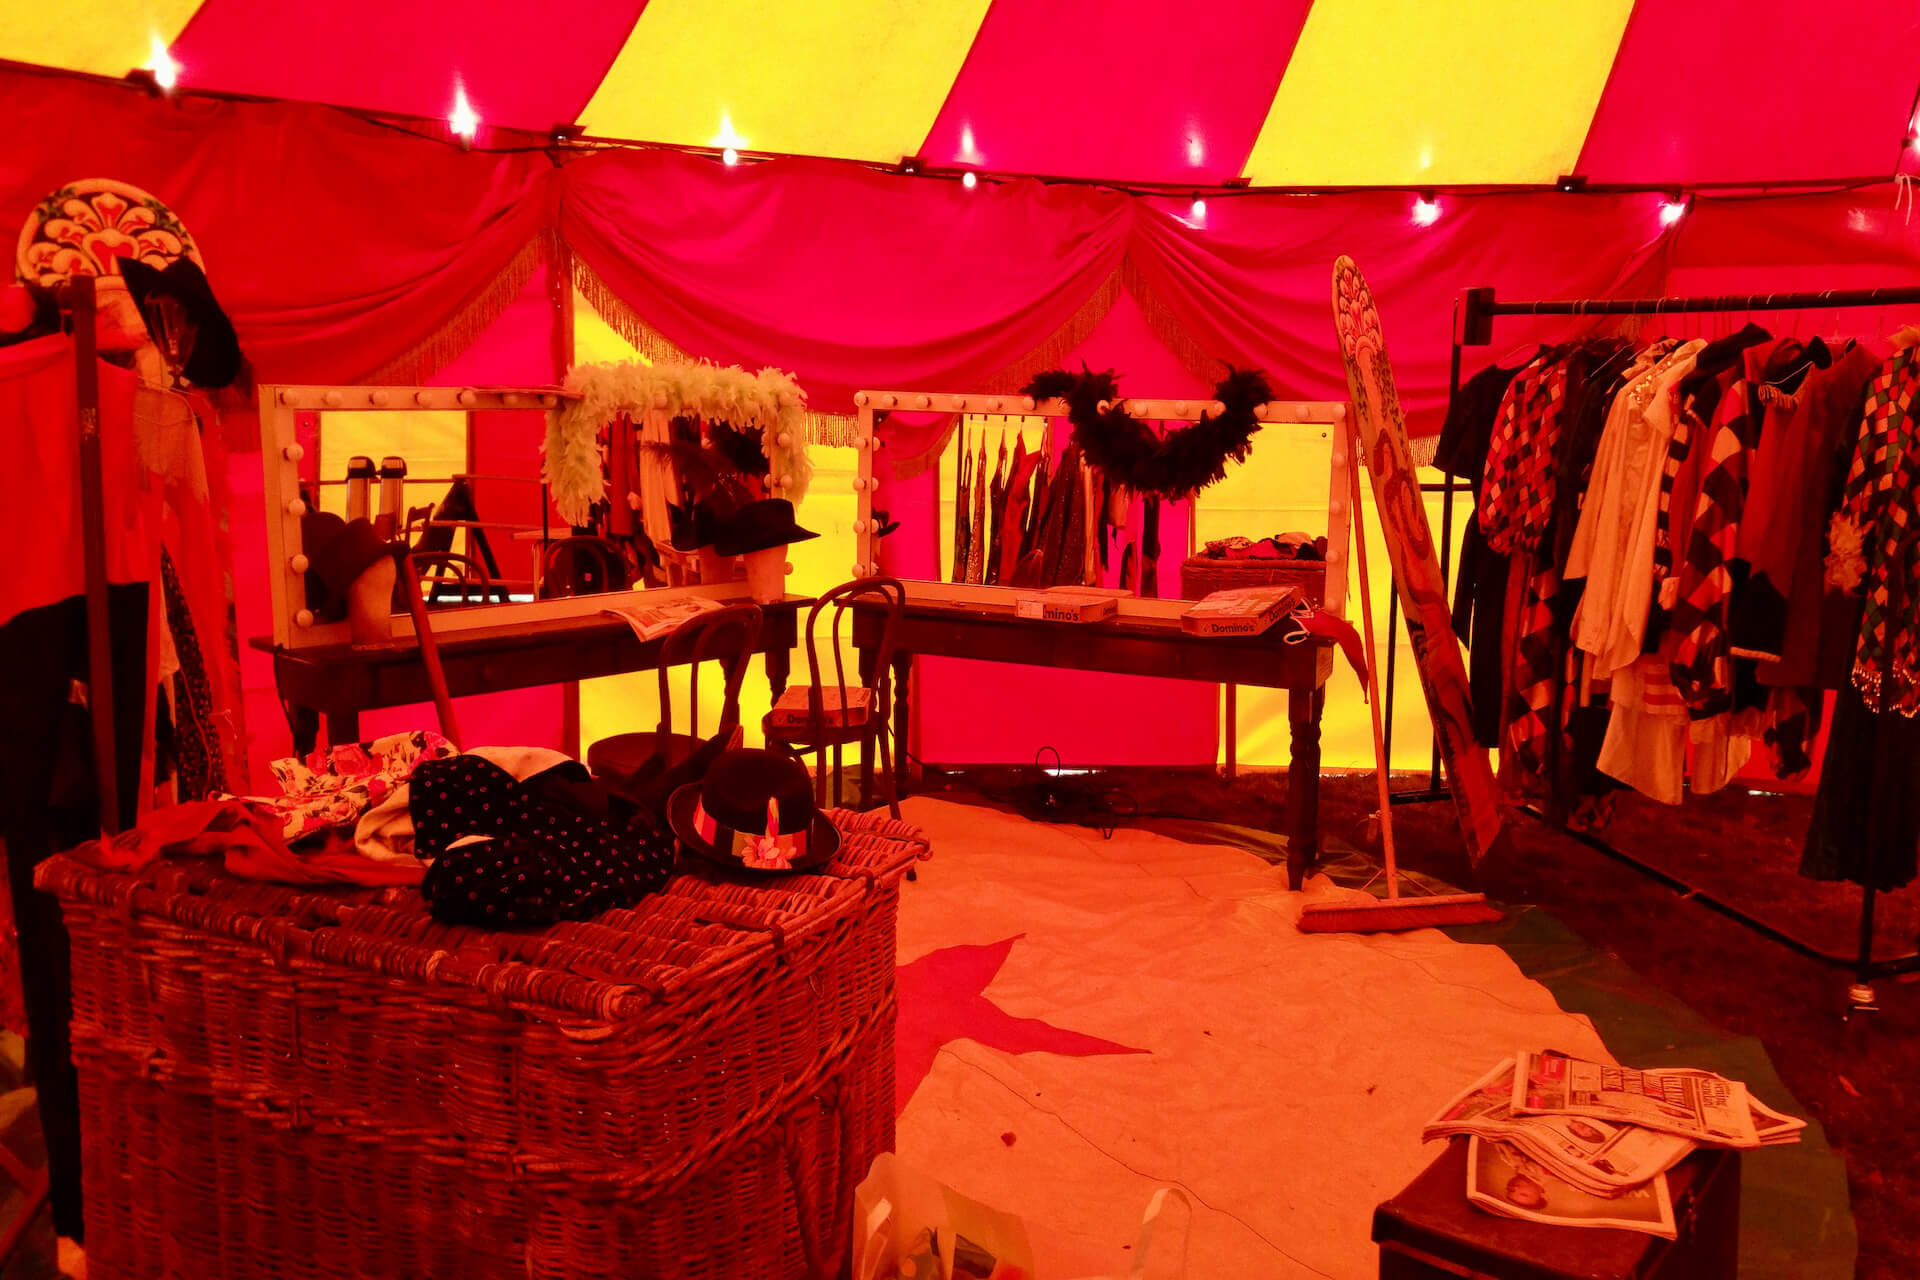 circus artists dressing room tent